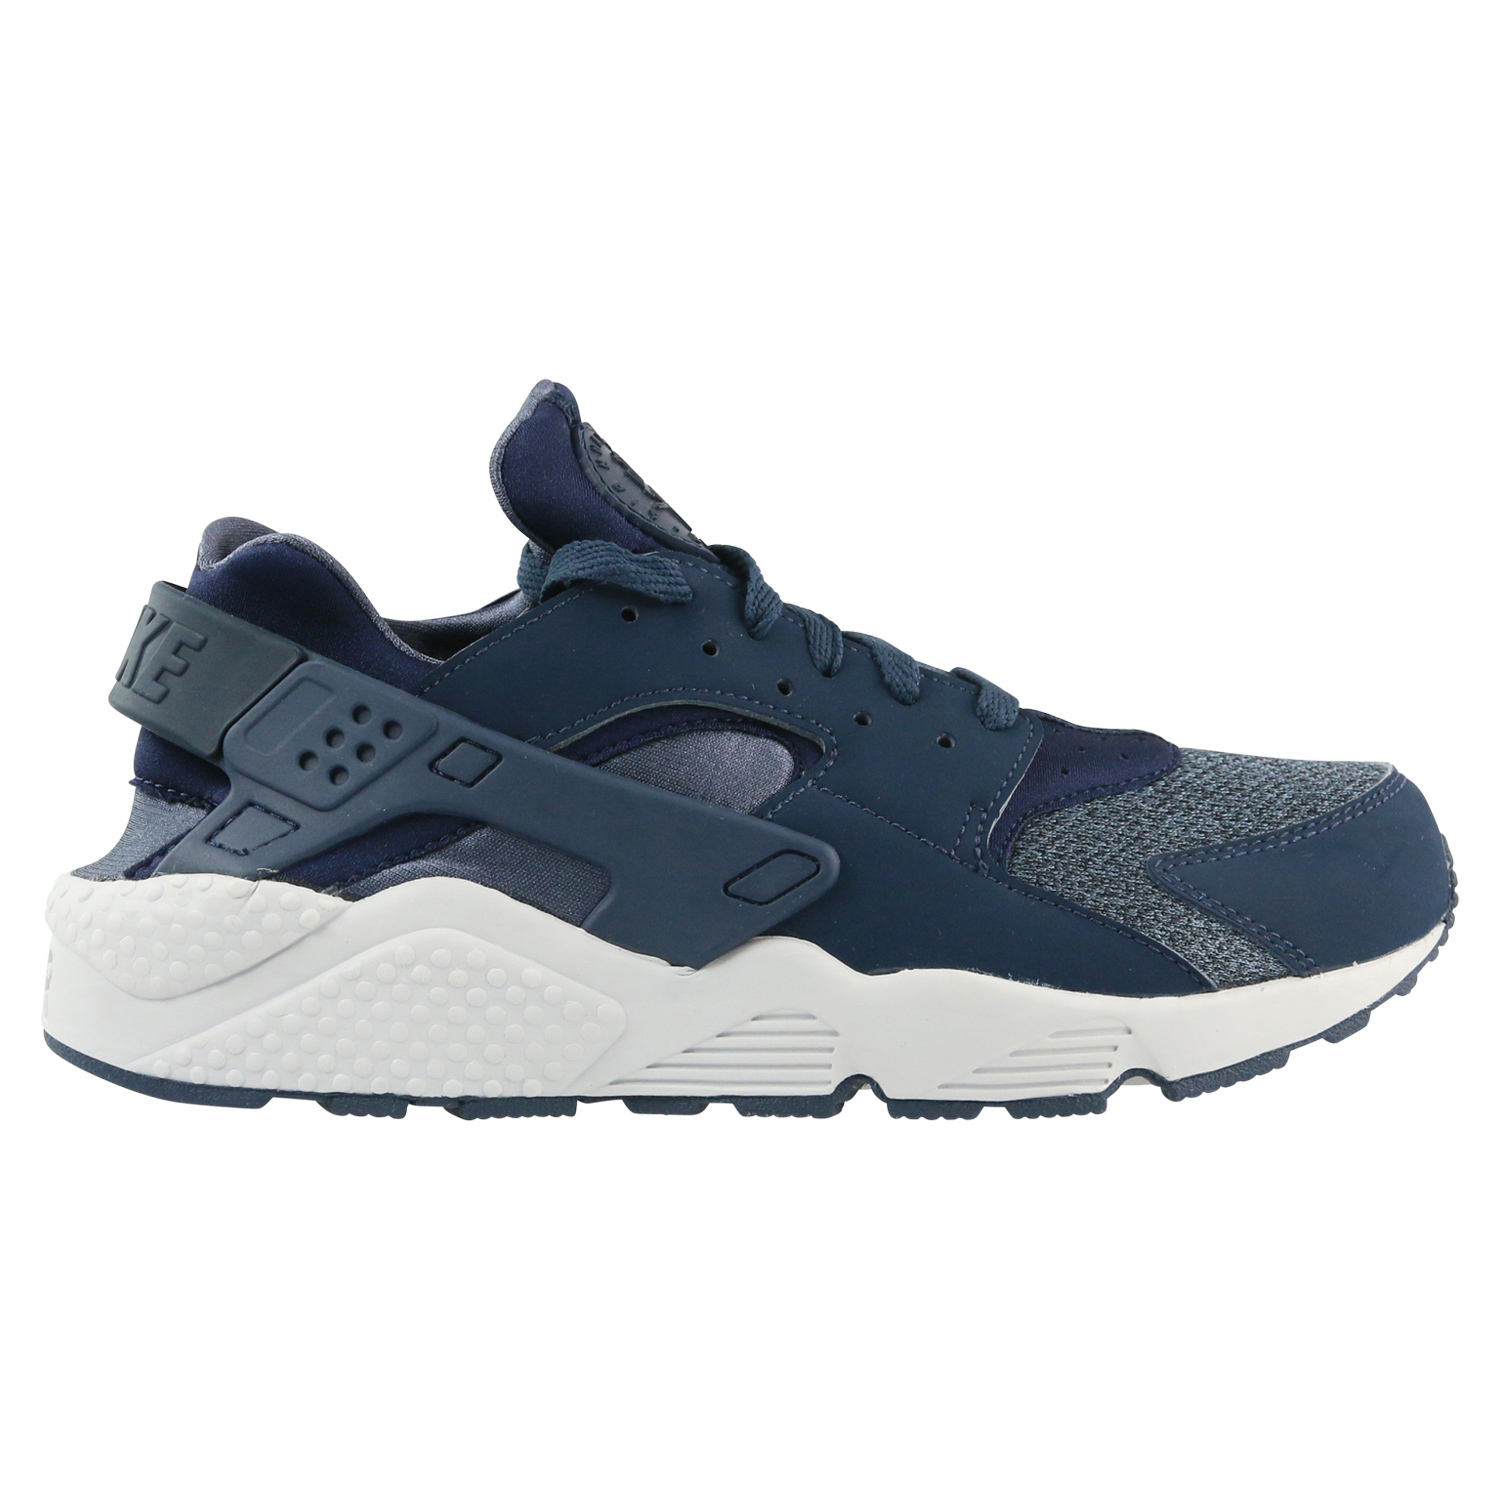 nike air huarache ultra premium se schuhe sneaker herren 318429 ebay. Black Bedroom Furniture Sets. Home Design Ideas